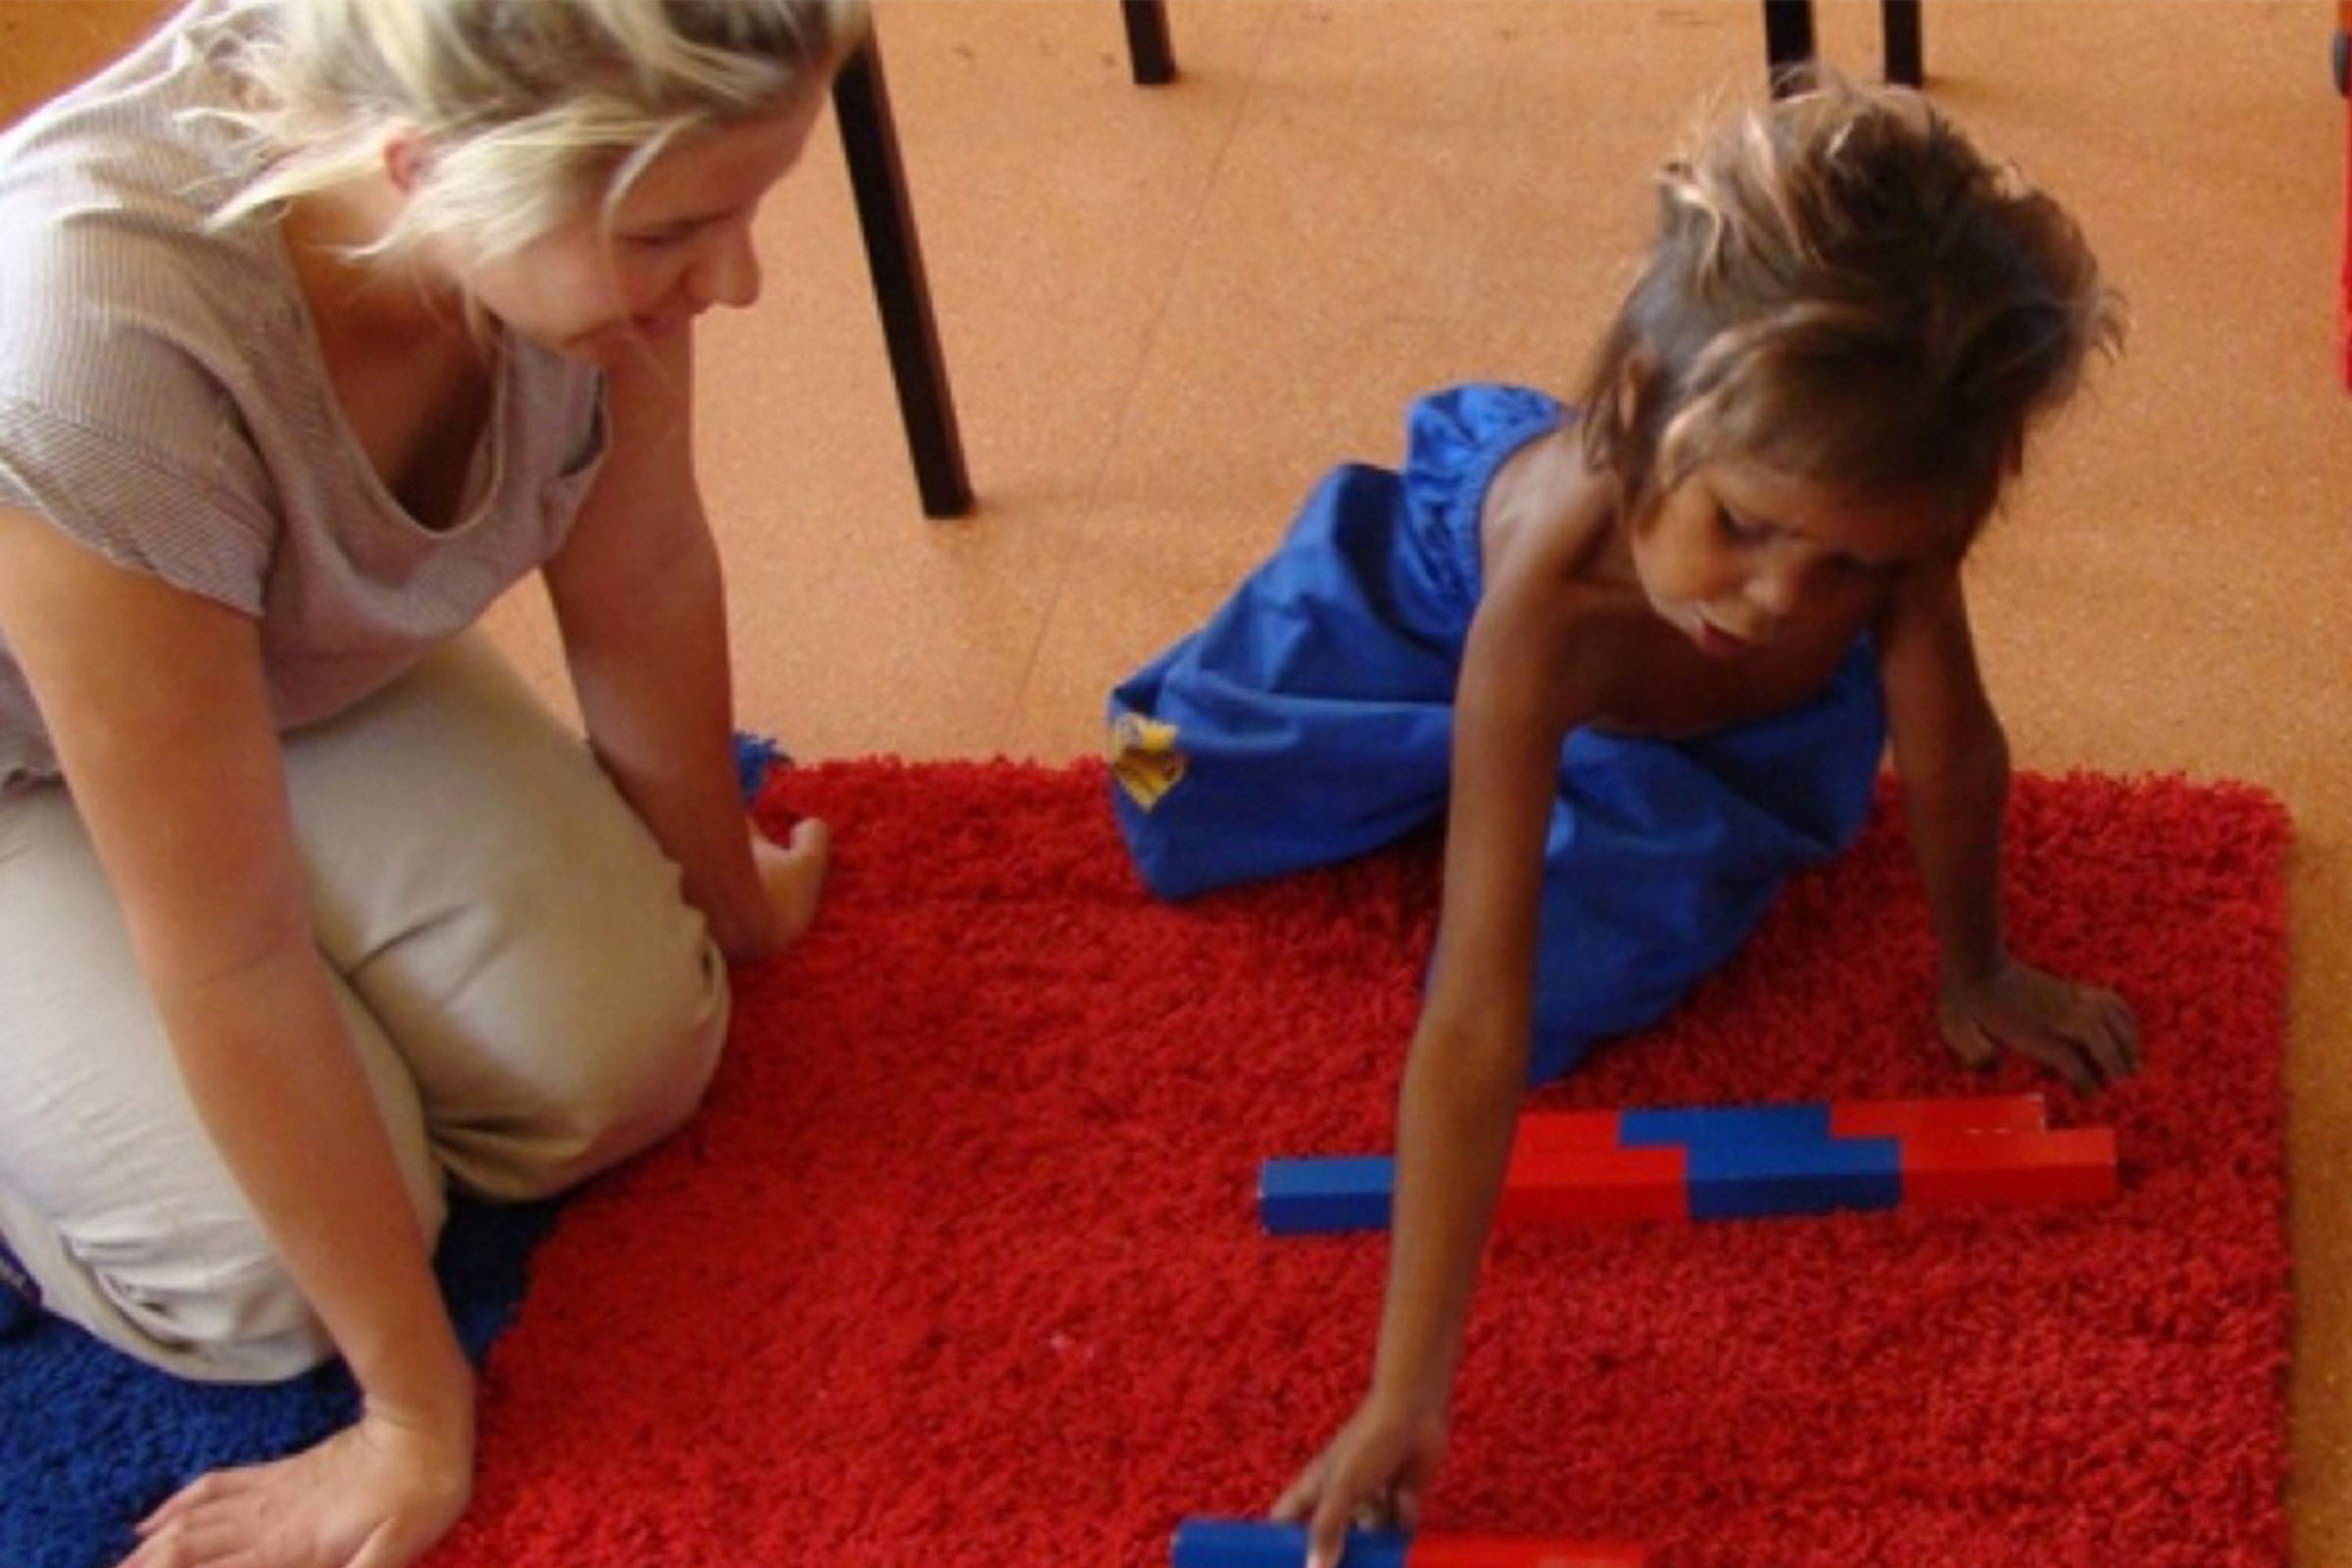 Montessori teacher with young child and maths materials